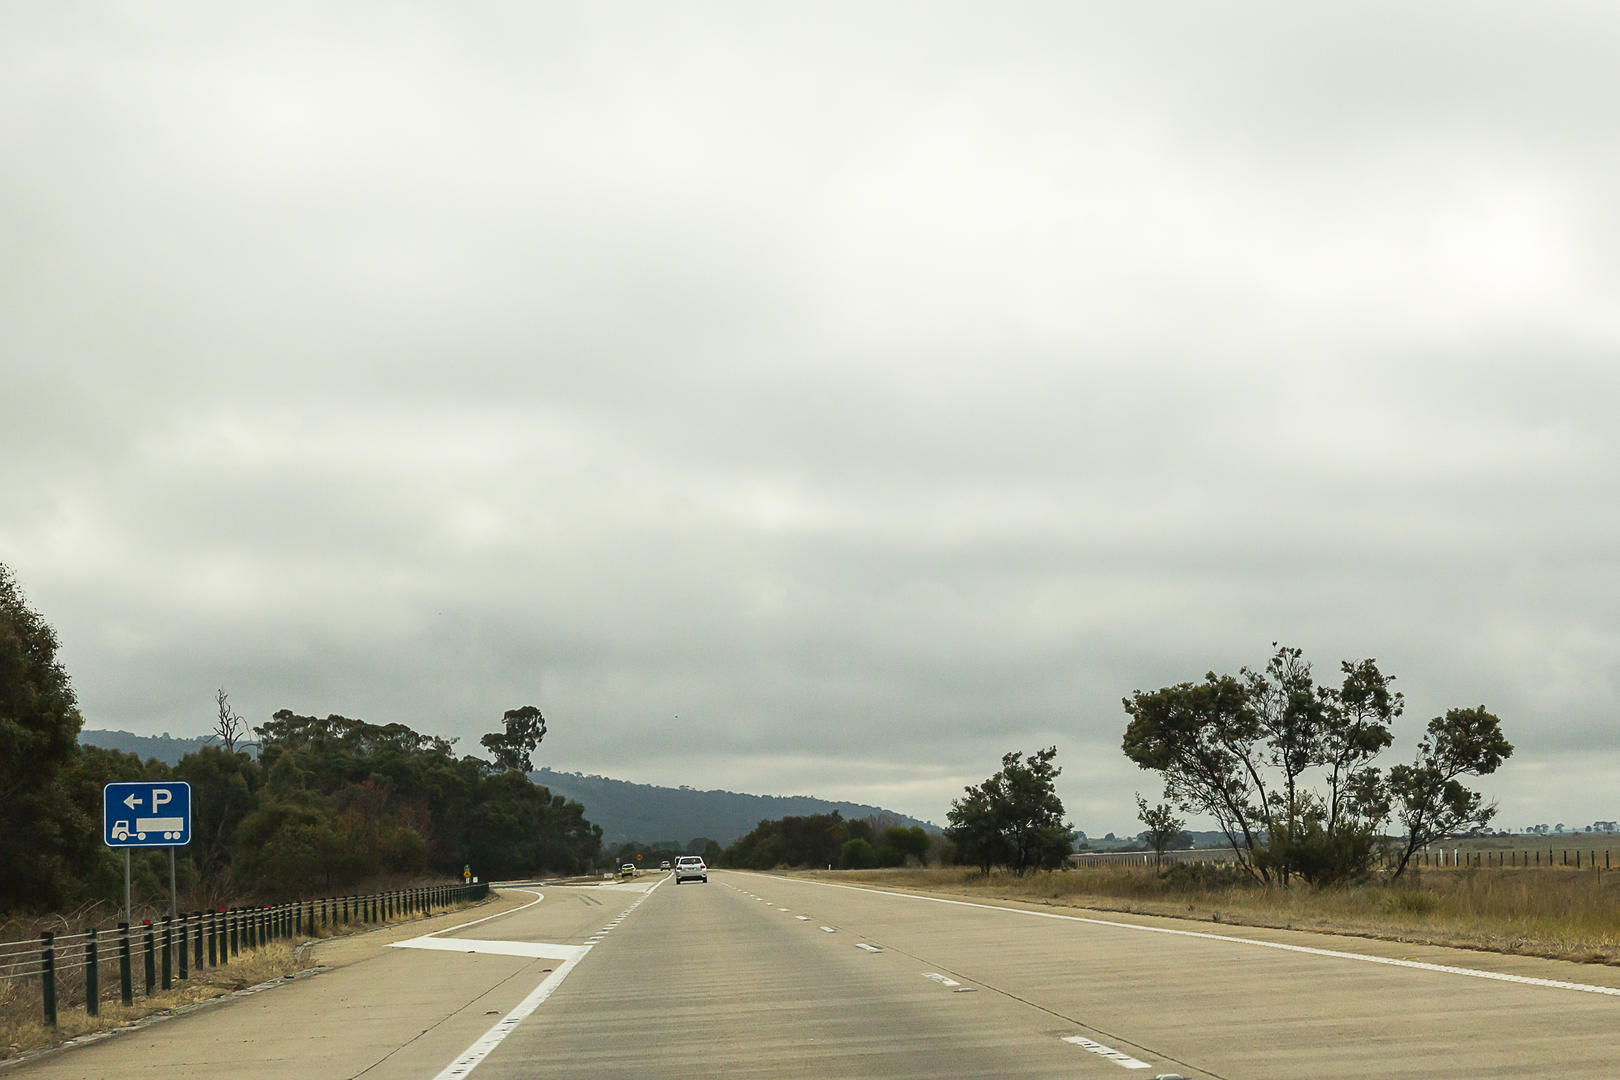 The Highway 17